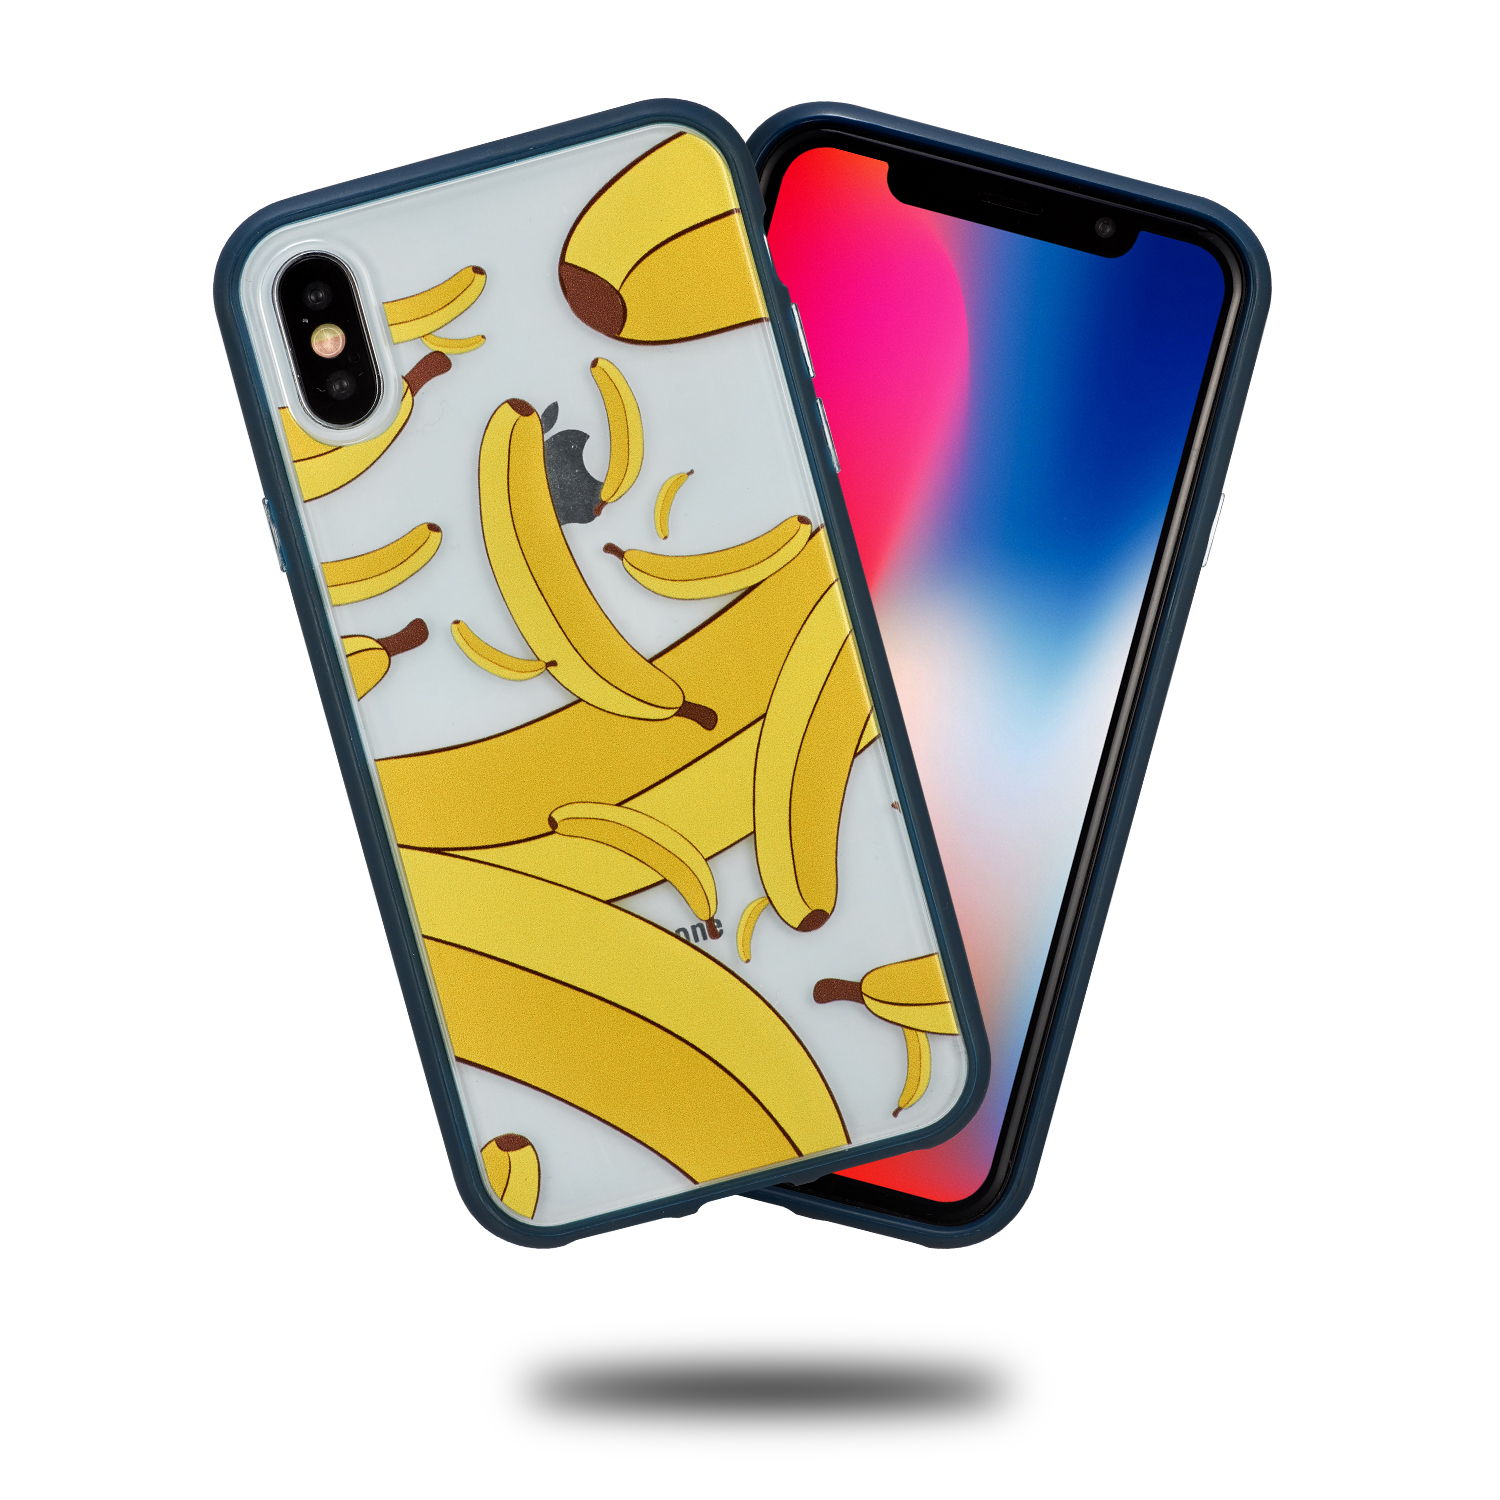 CTUNES For iPhone X Case,Hybrid High Impact Protective Hard PC back TPU Case Cover for iPhone X